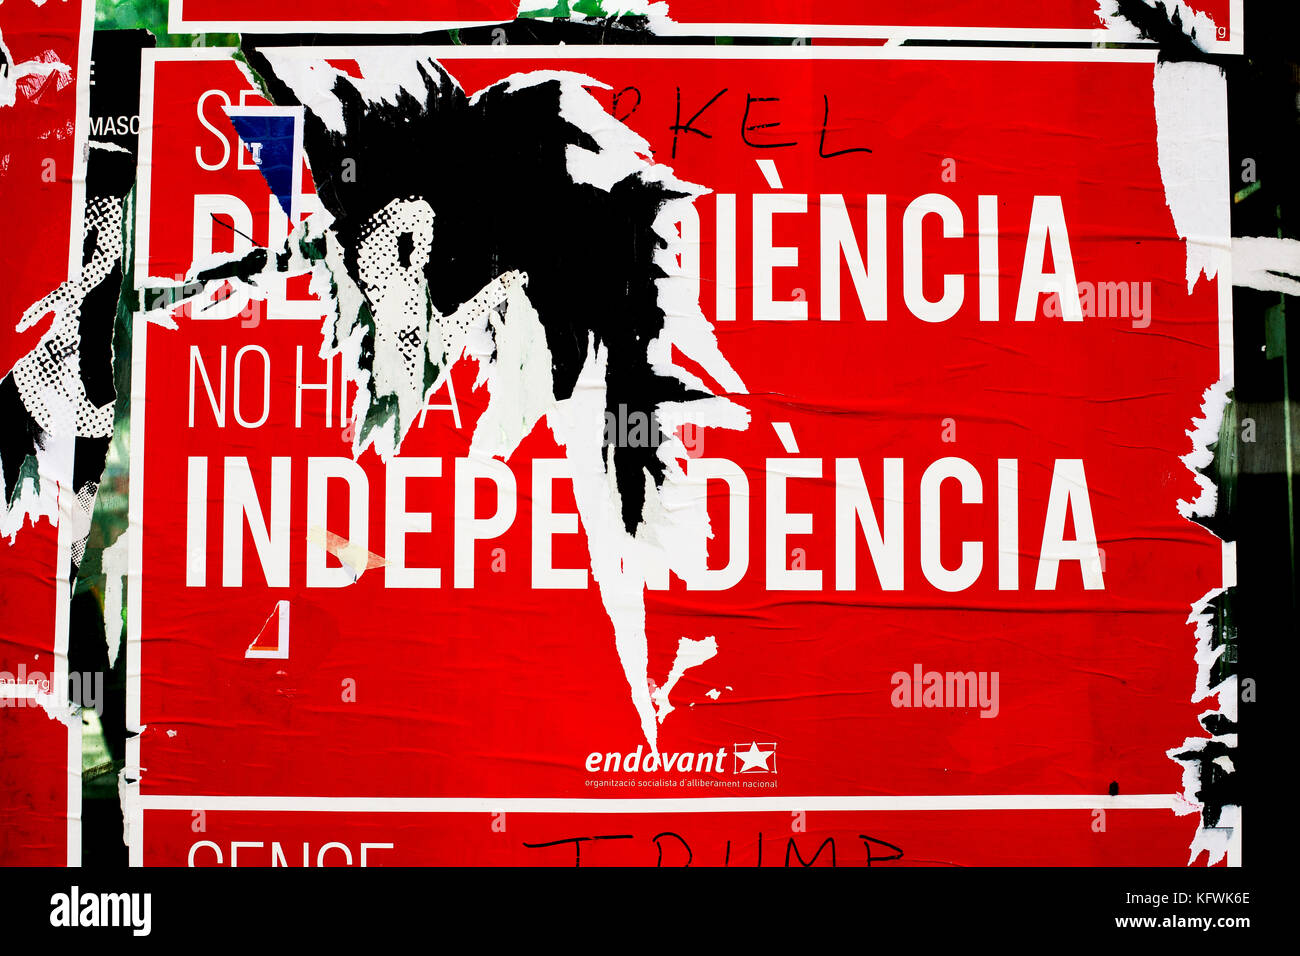 Pro Catalan Independence poster, Barcelona, Spain. - Stock Image